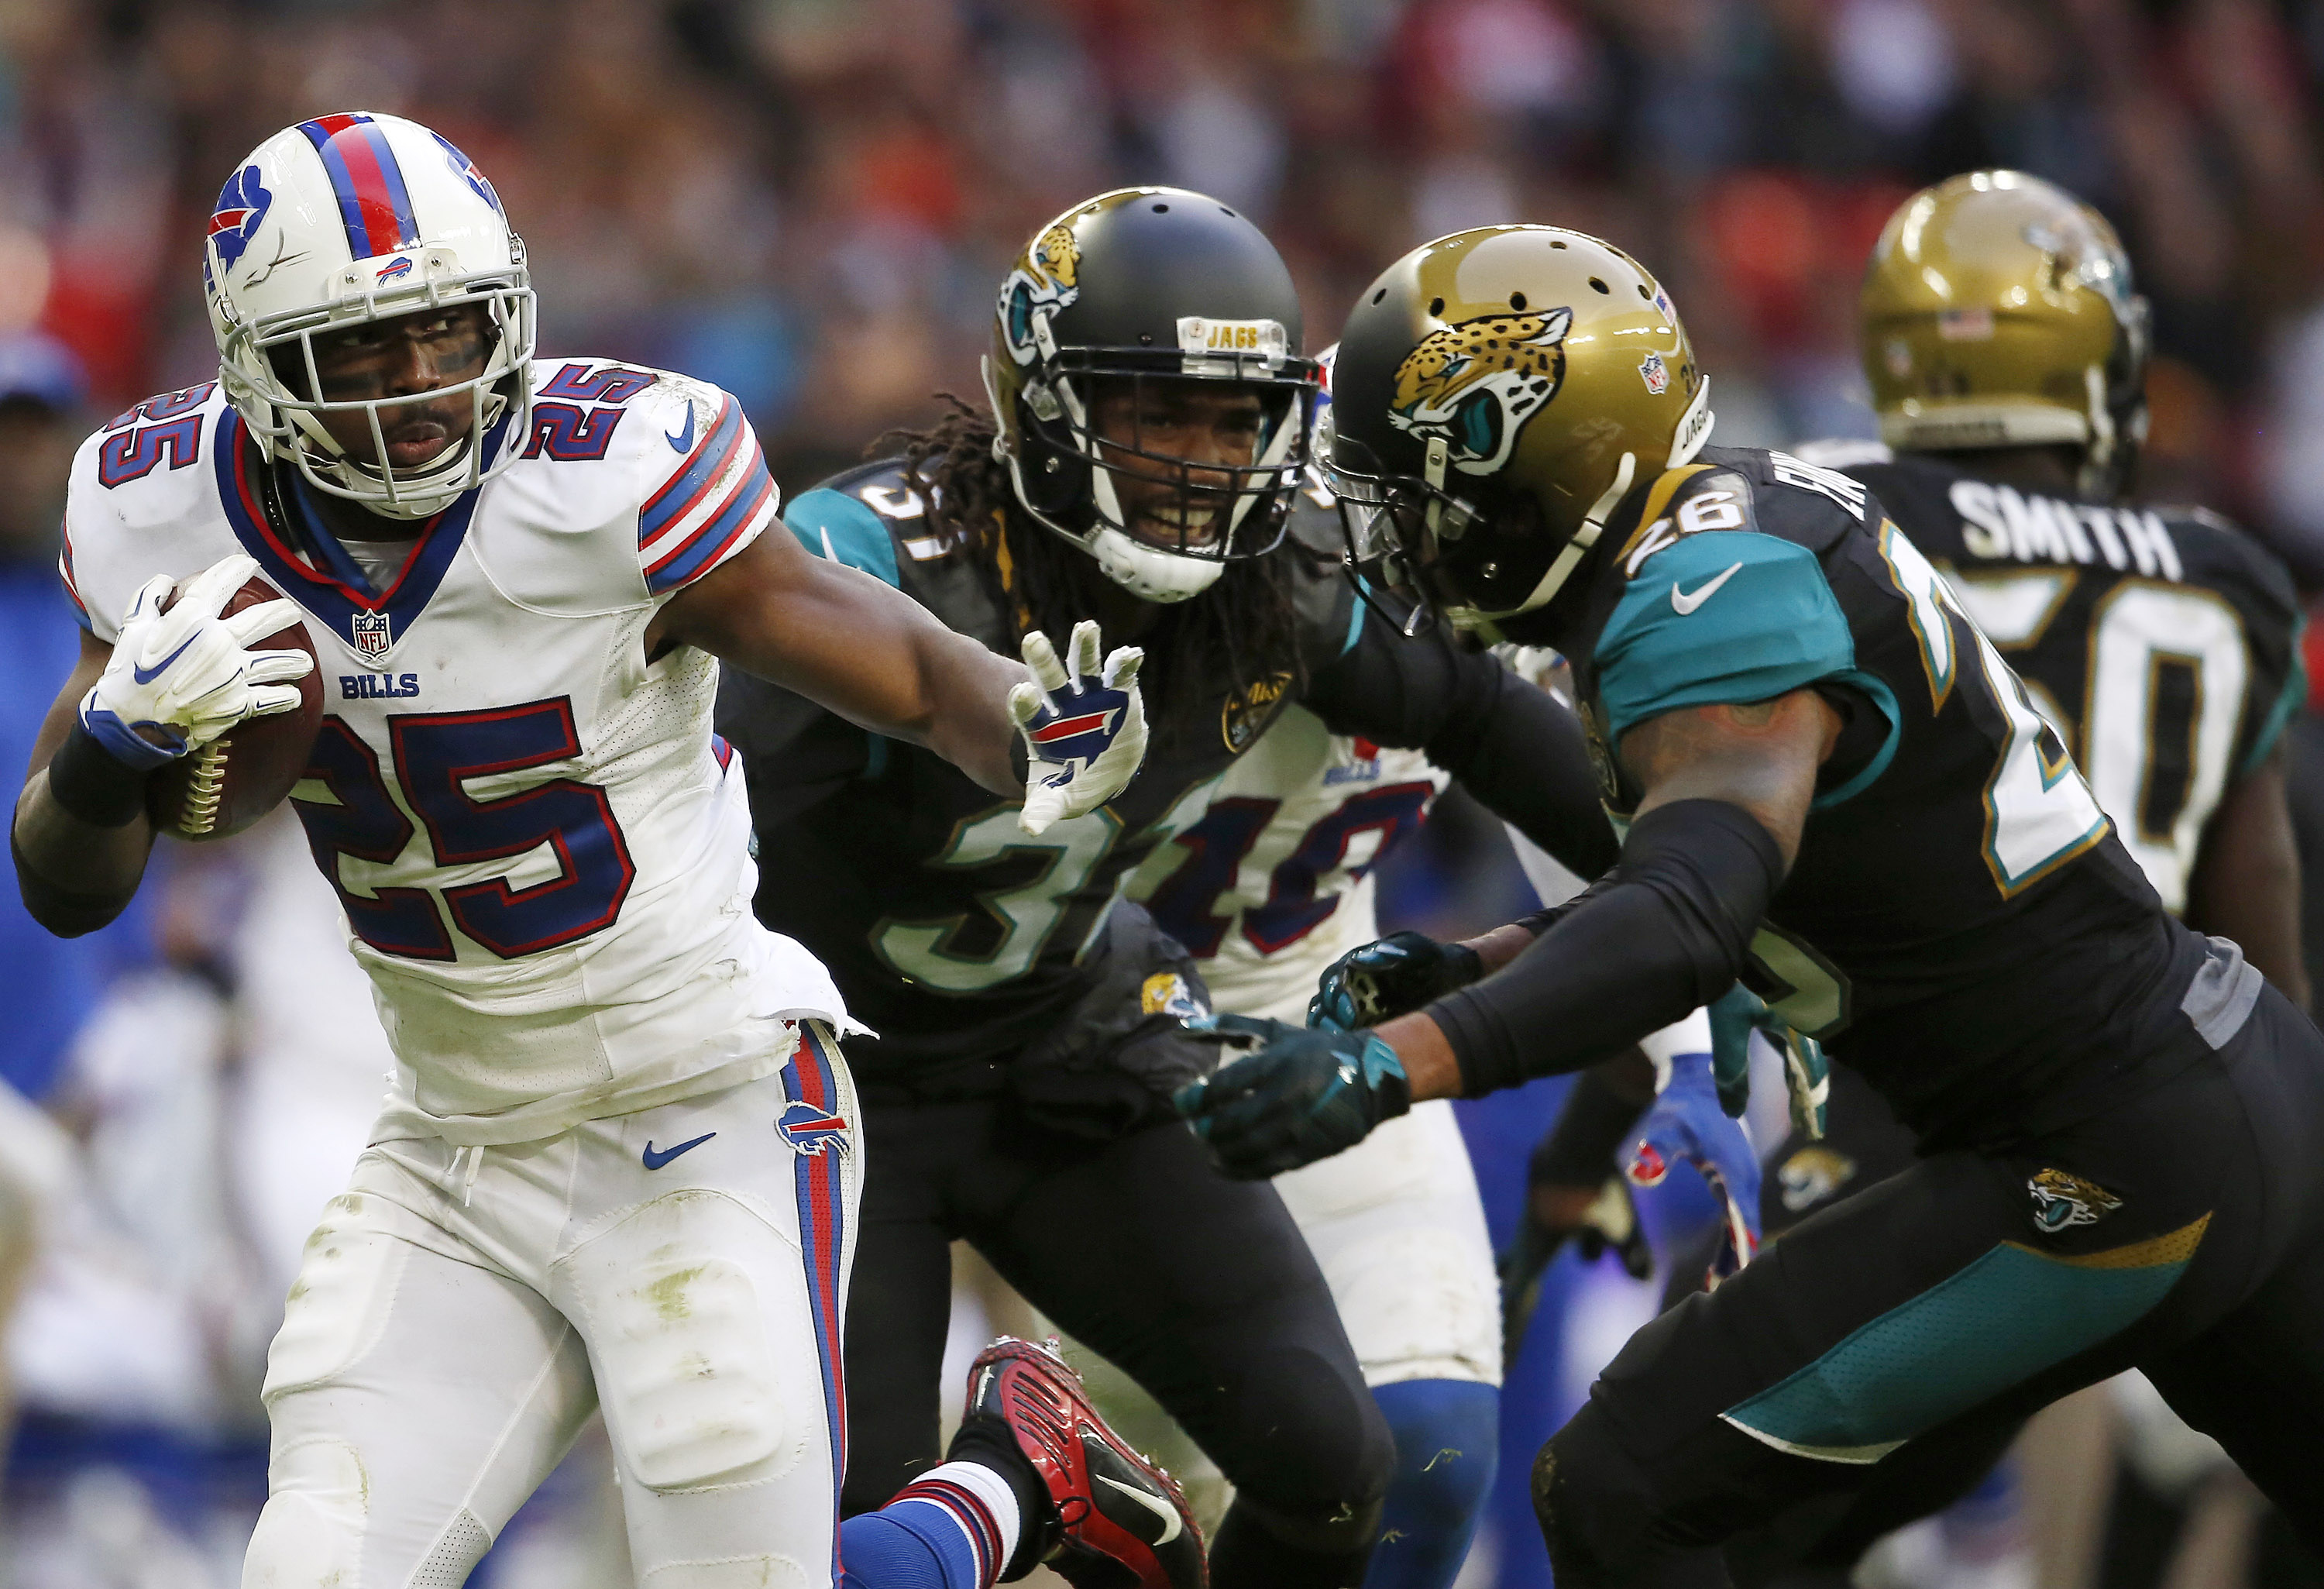 LeSean McCoy had some great runs against the Jaguars. (Getty Images)